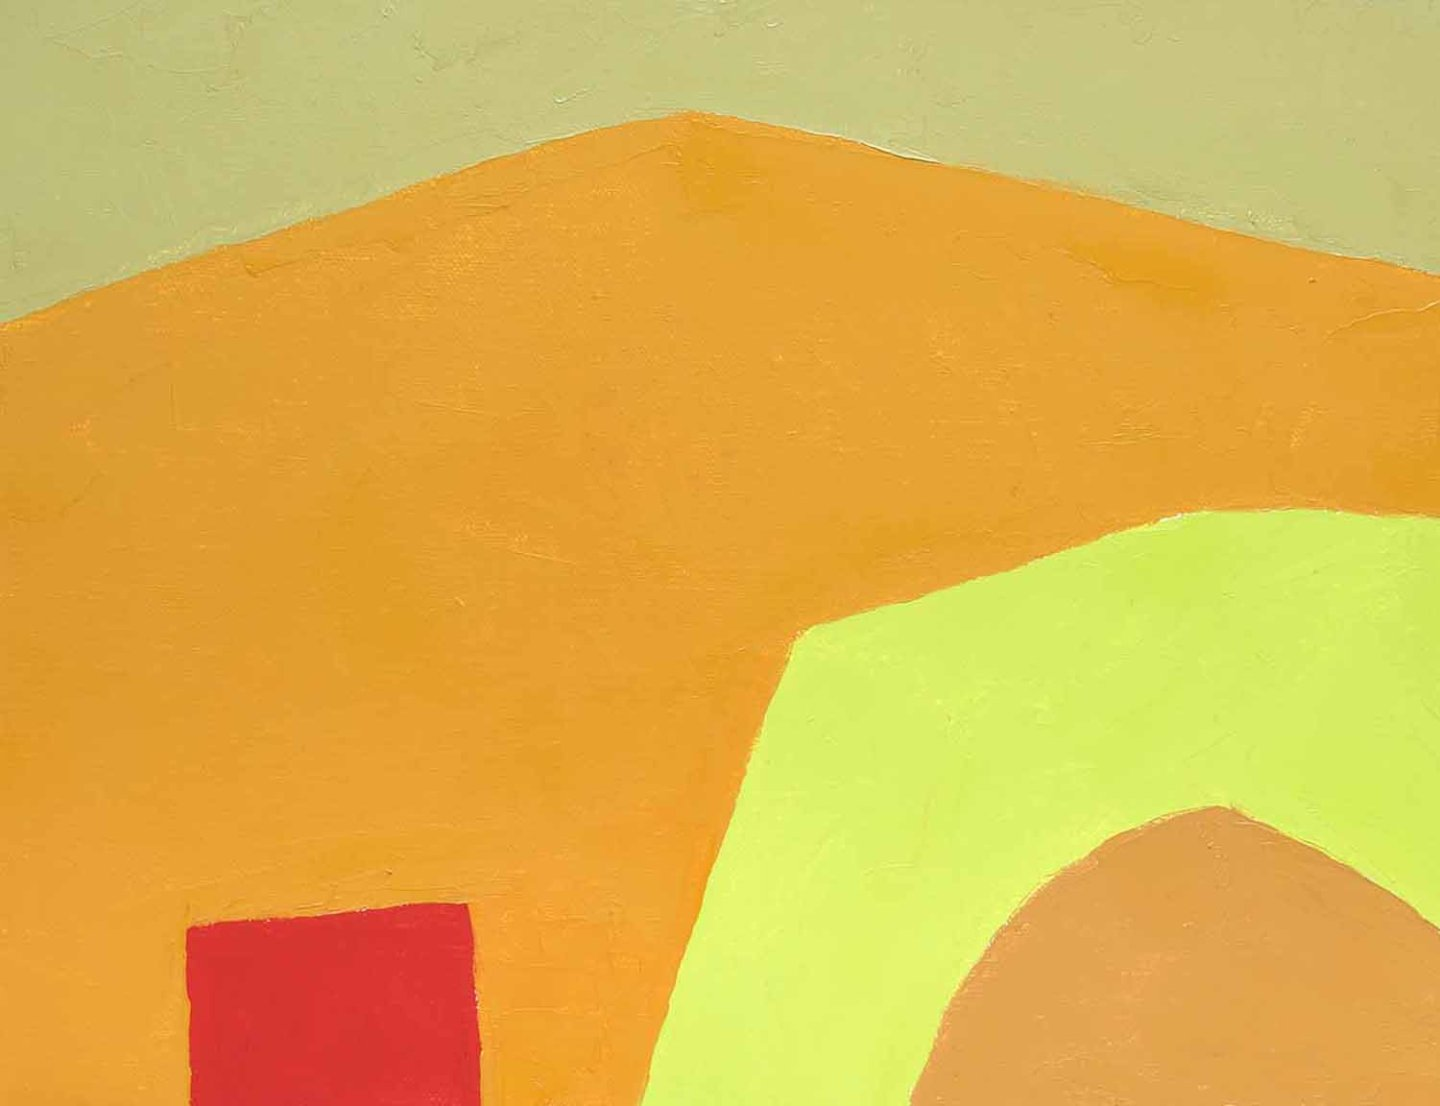 Etel Adnan, Sans titre, 2014 (courtesy of the Artist and Galerie Lelong, Paris/New York)